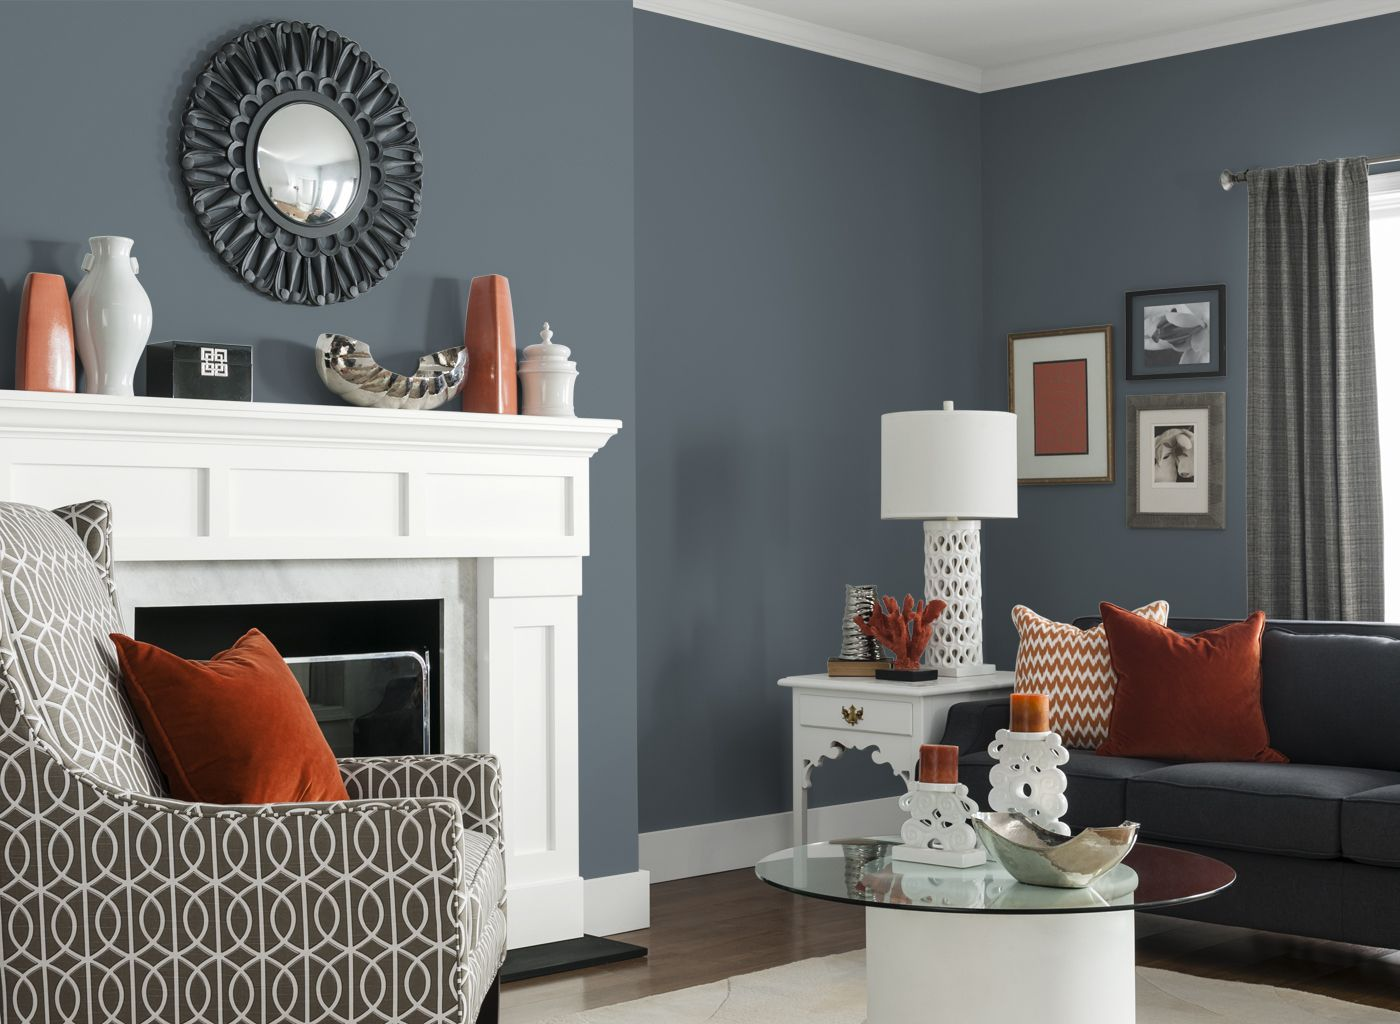 Best Living Room In Glidden S French Grey 70Bg 19 071 Color 640 x 480